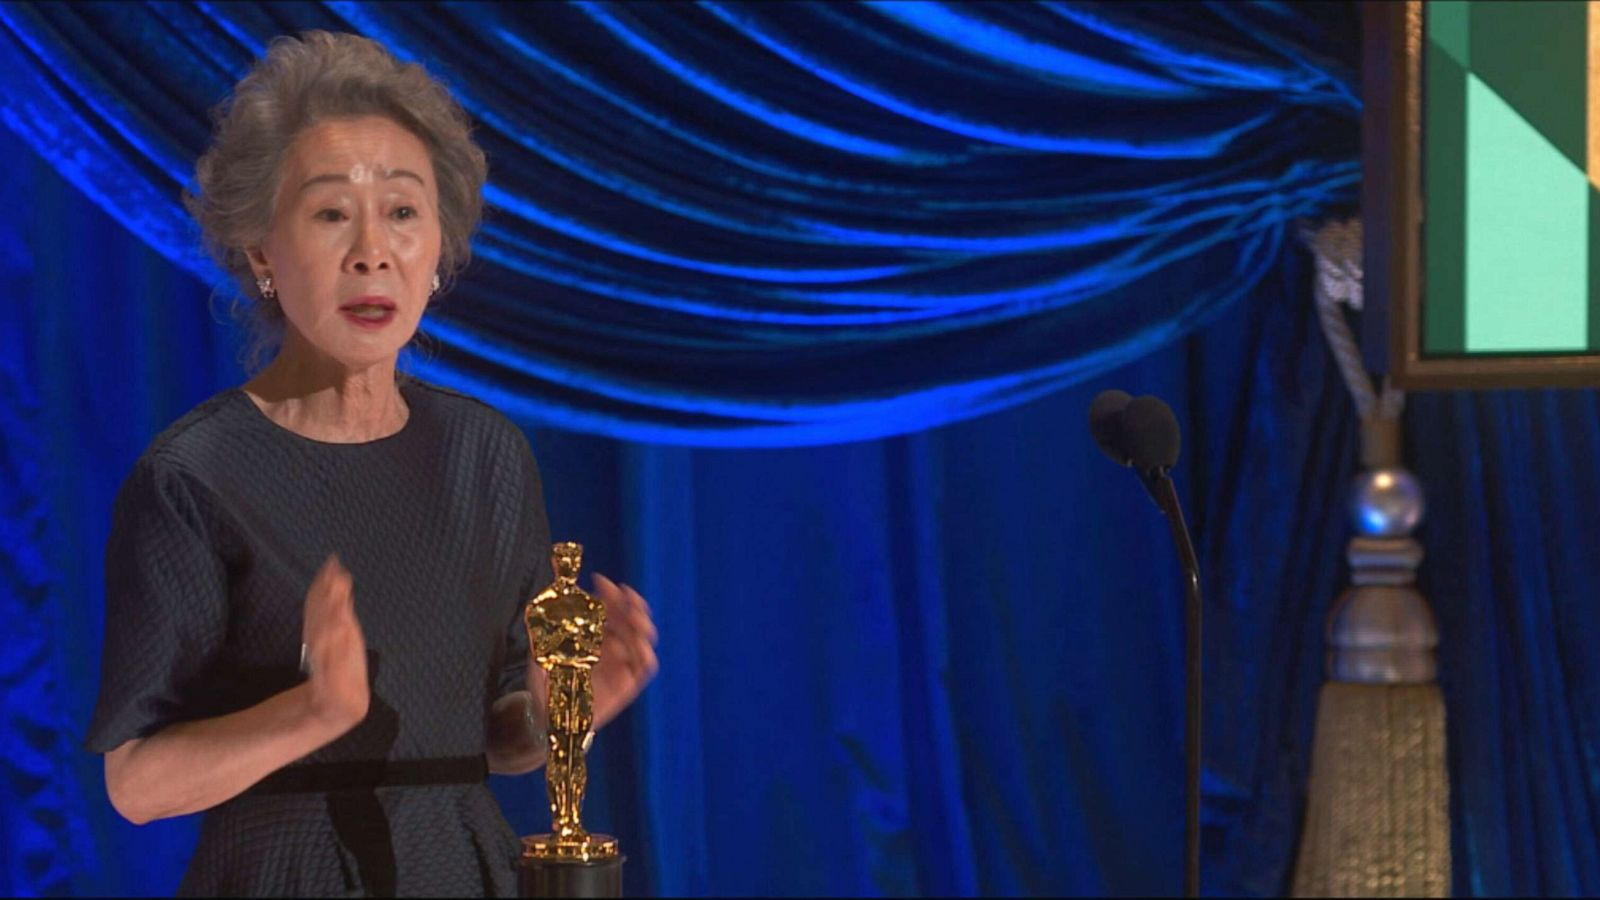 Oscars 2021: Yuh-Jung Youn wins best supporting actress, gives memorable  speech - ABC News